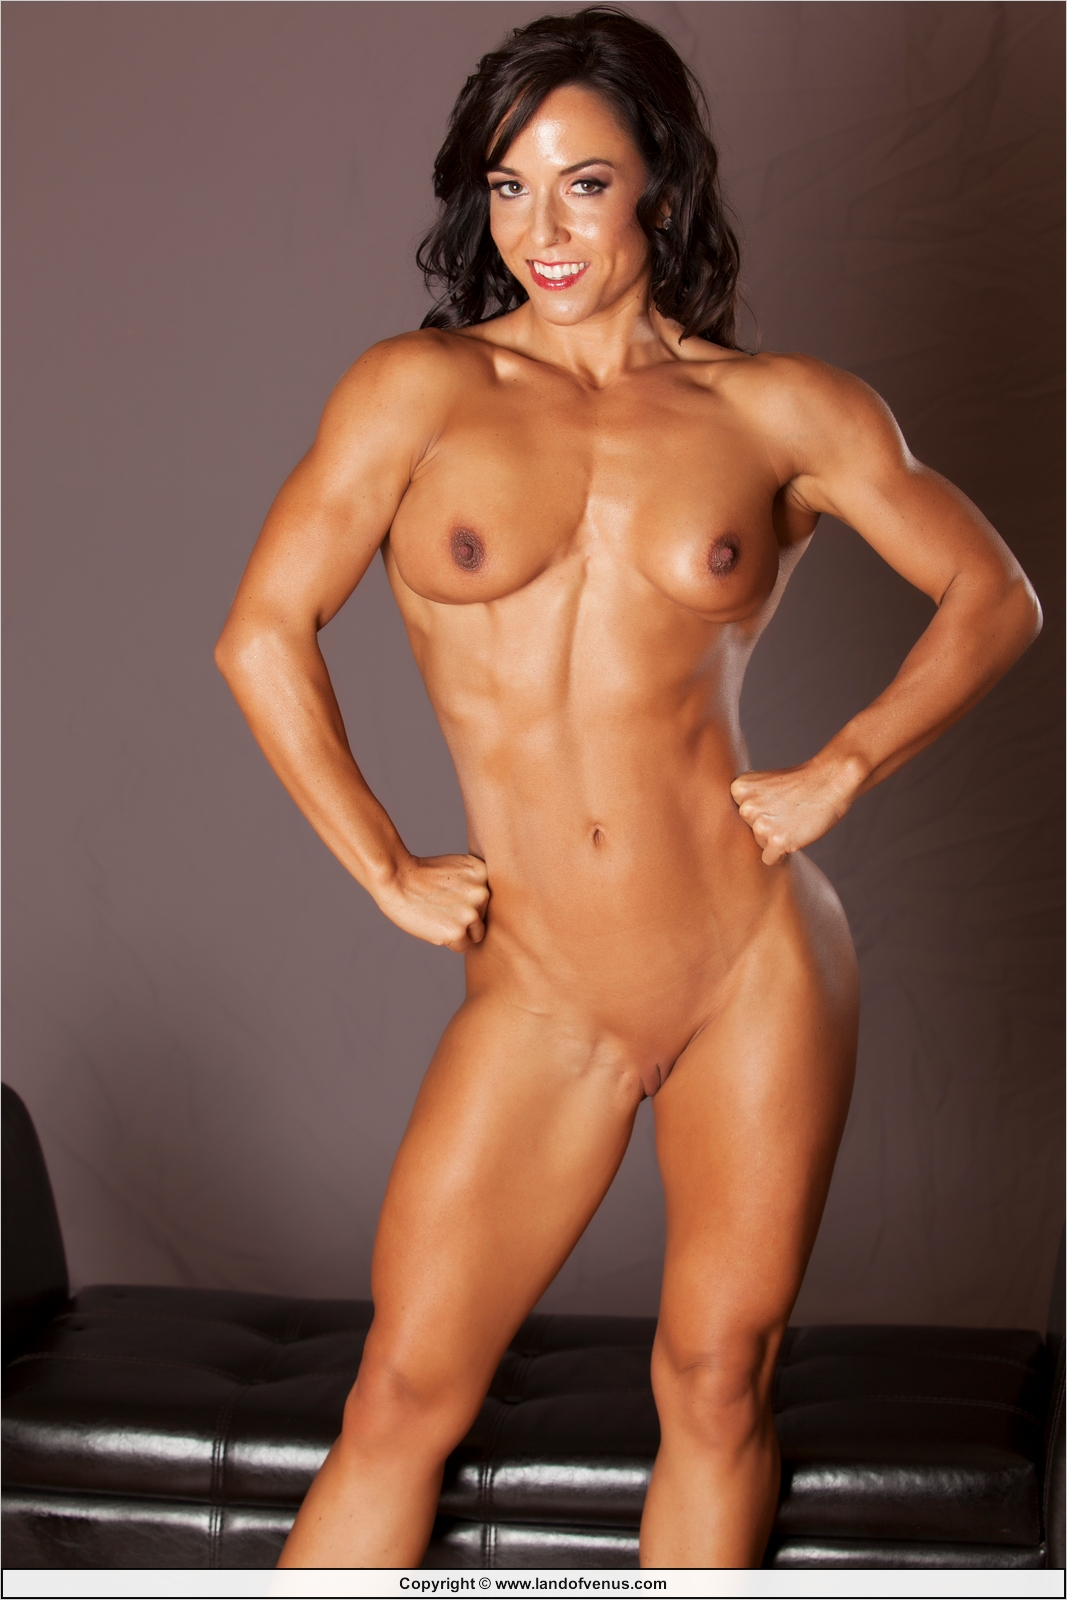 Catherine holland fitness nude girls pity, that